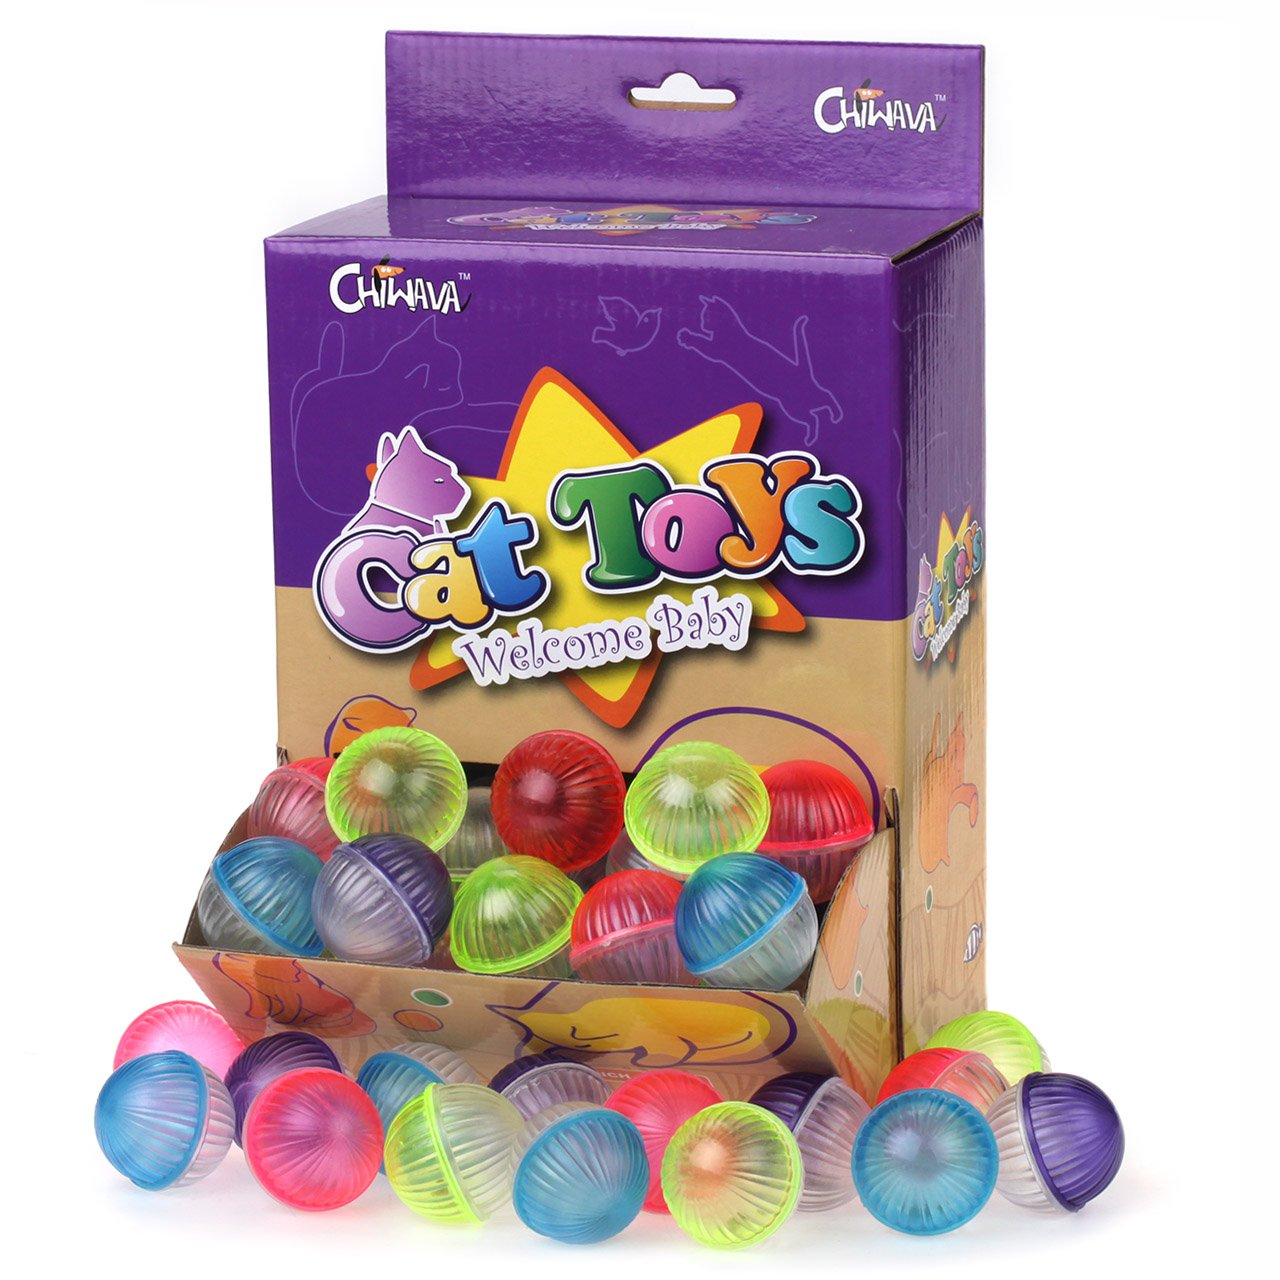 Chiwava 48PCS 1.6''-1.8'' Plastic Cat Kitten JINGLE BALLS Crazies Cat Toy with Jingling Bell Chase Toy Assorted Color